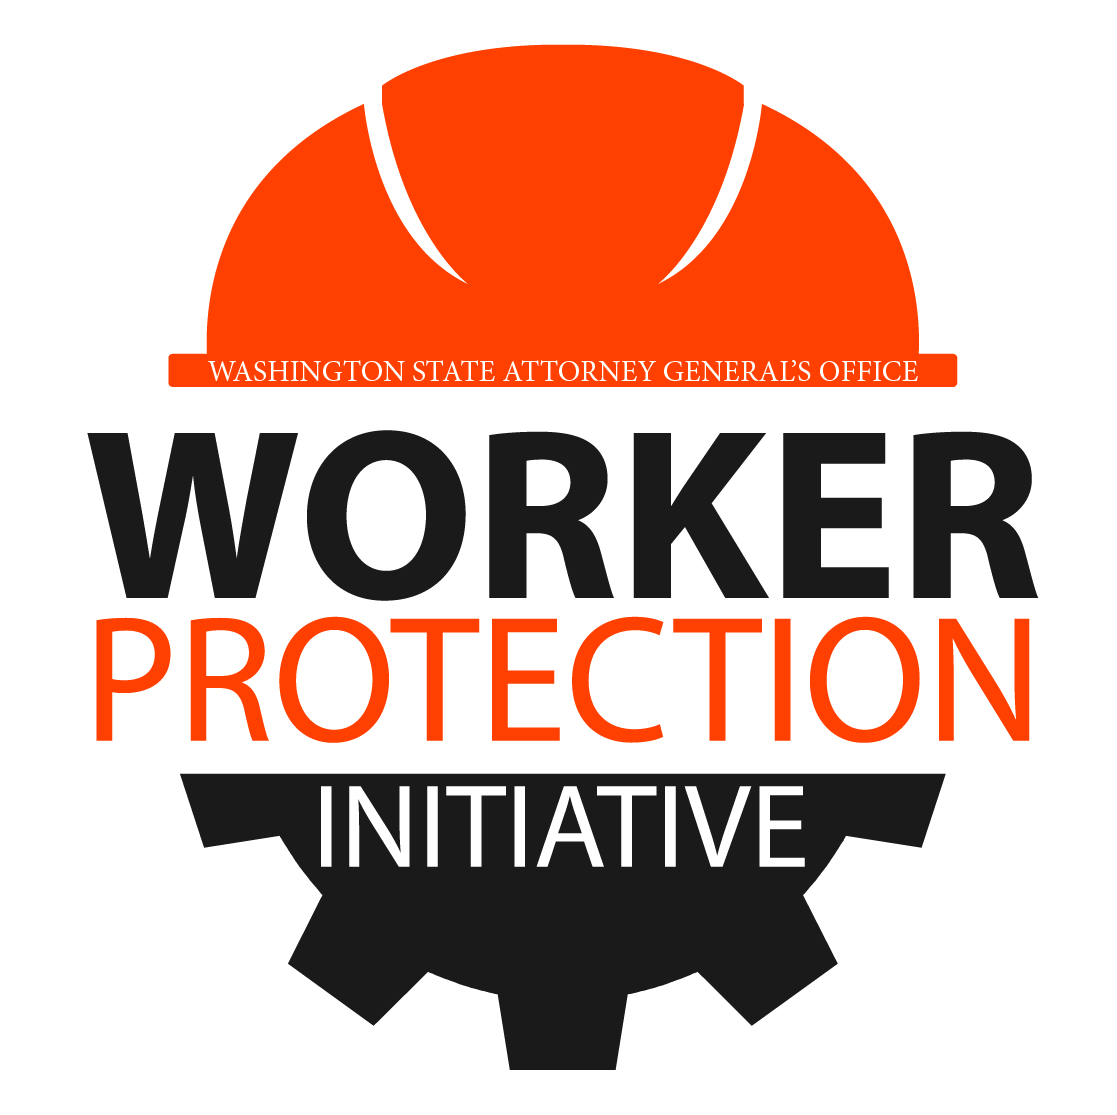 Attorney General's Office Worker Protection Initiative Logo